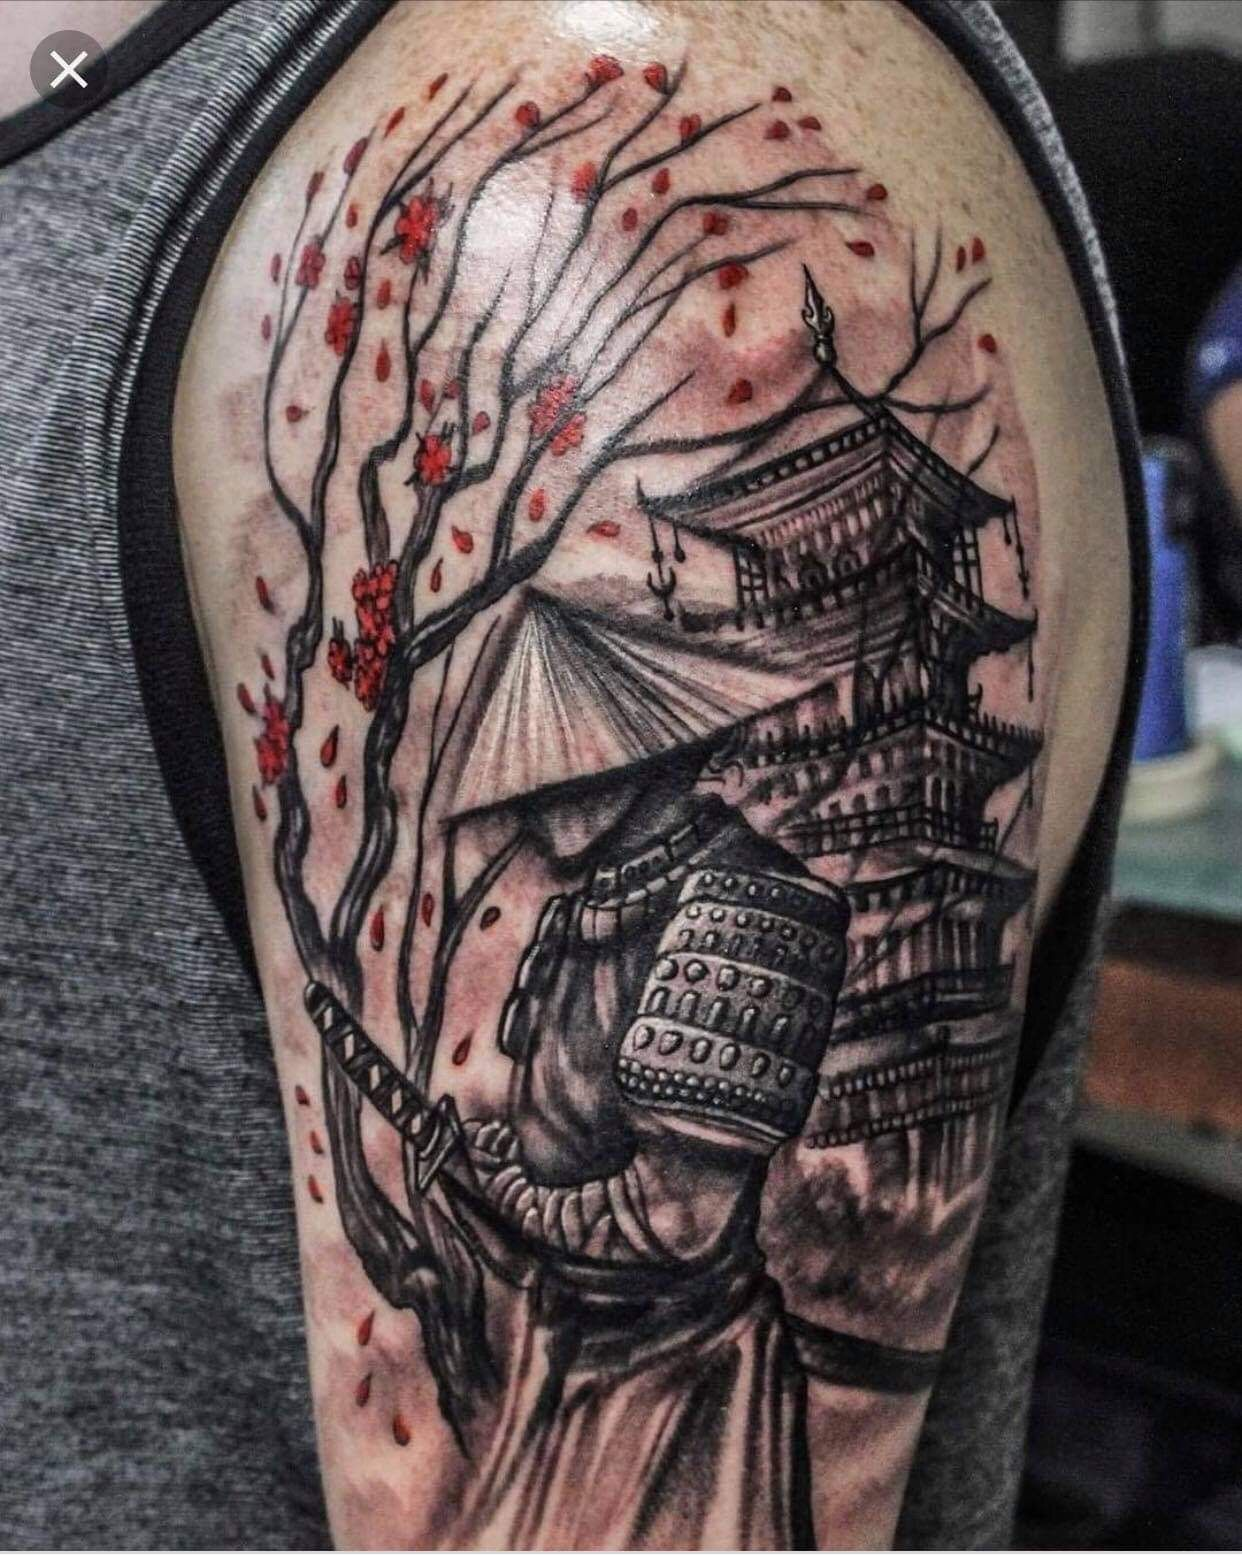 Pin by Santiago Fabian on tattoos | Samurai tattoo sleeve, Japanese tattoo,  Samurai tattoo design